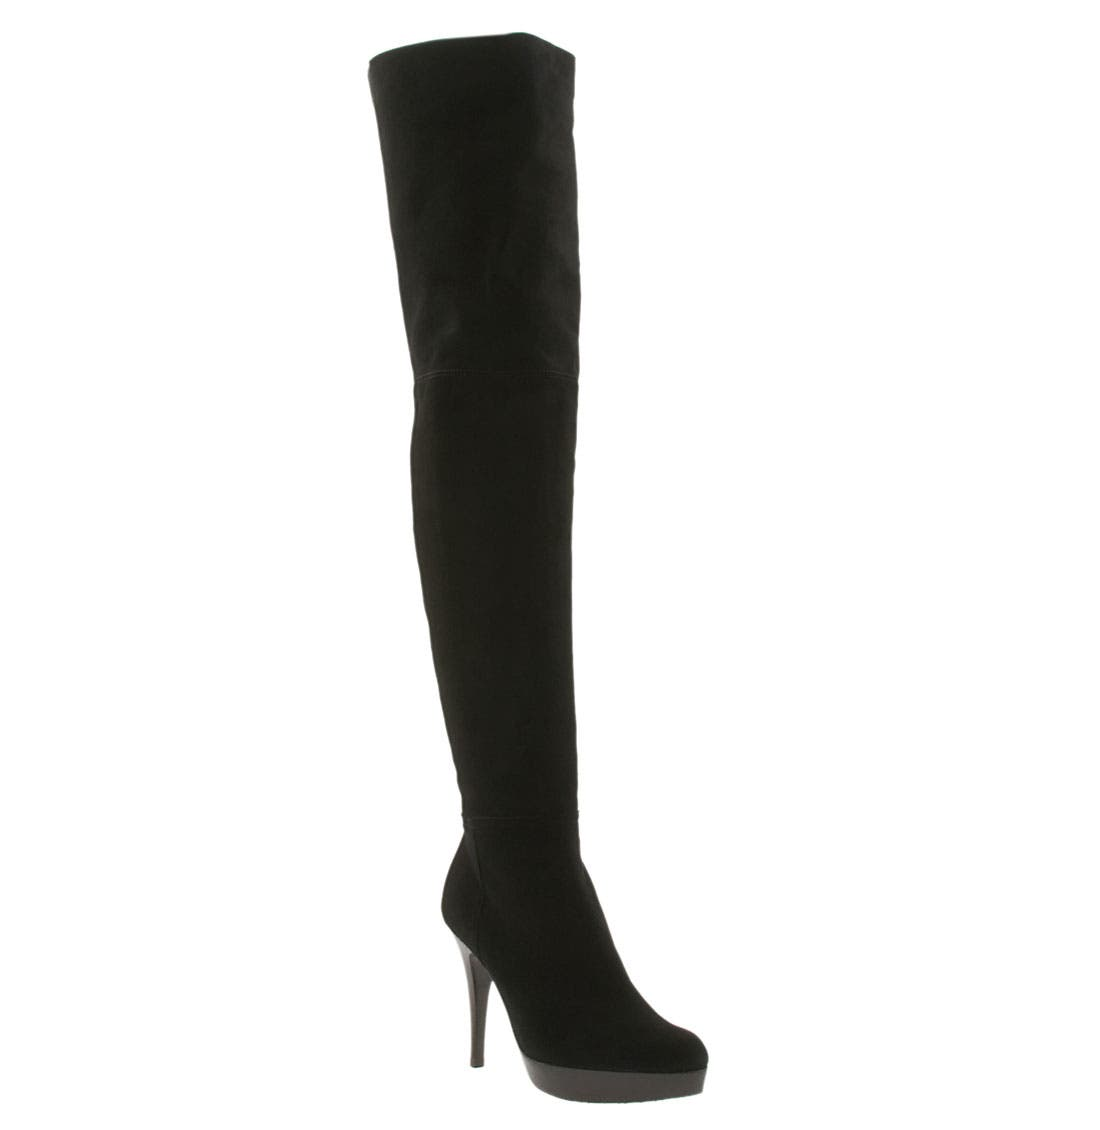 Alternate Image 1 Selected - Stuart Weitzman 'Hiho' Thigh High Boot